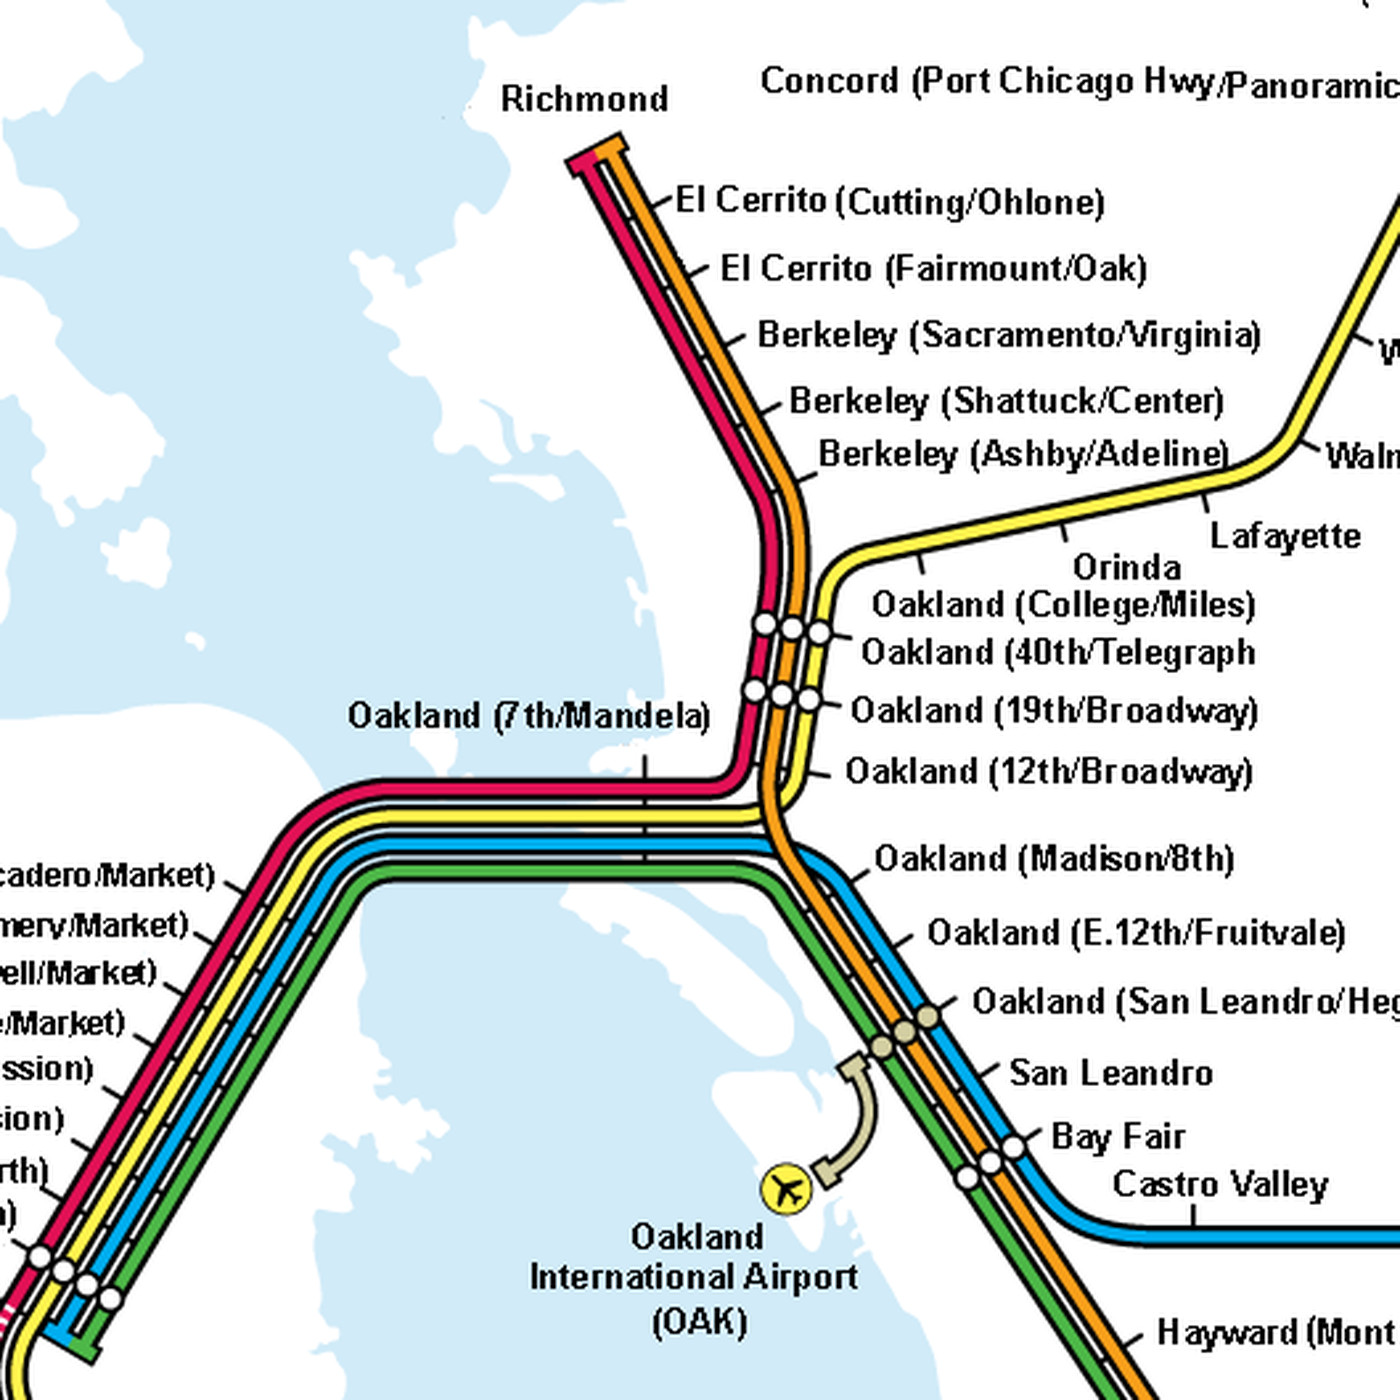 Trying to build a better BART map - Curbed SF on atlanta bart map, sacramento bart map, bart bus map, berkeley bart map, original bart map, walnut creek bart map, bay area bart map, bart system map, oakland bart map, richmond bart map, california bart map, bart muni map, bart station map, pleasanton bart map, east bay bart map, future bart map, bart sfo airport map, los angeles bart map, pittsburgh bart map, dallas bart map,